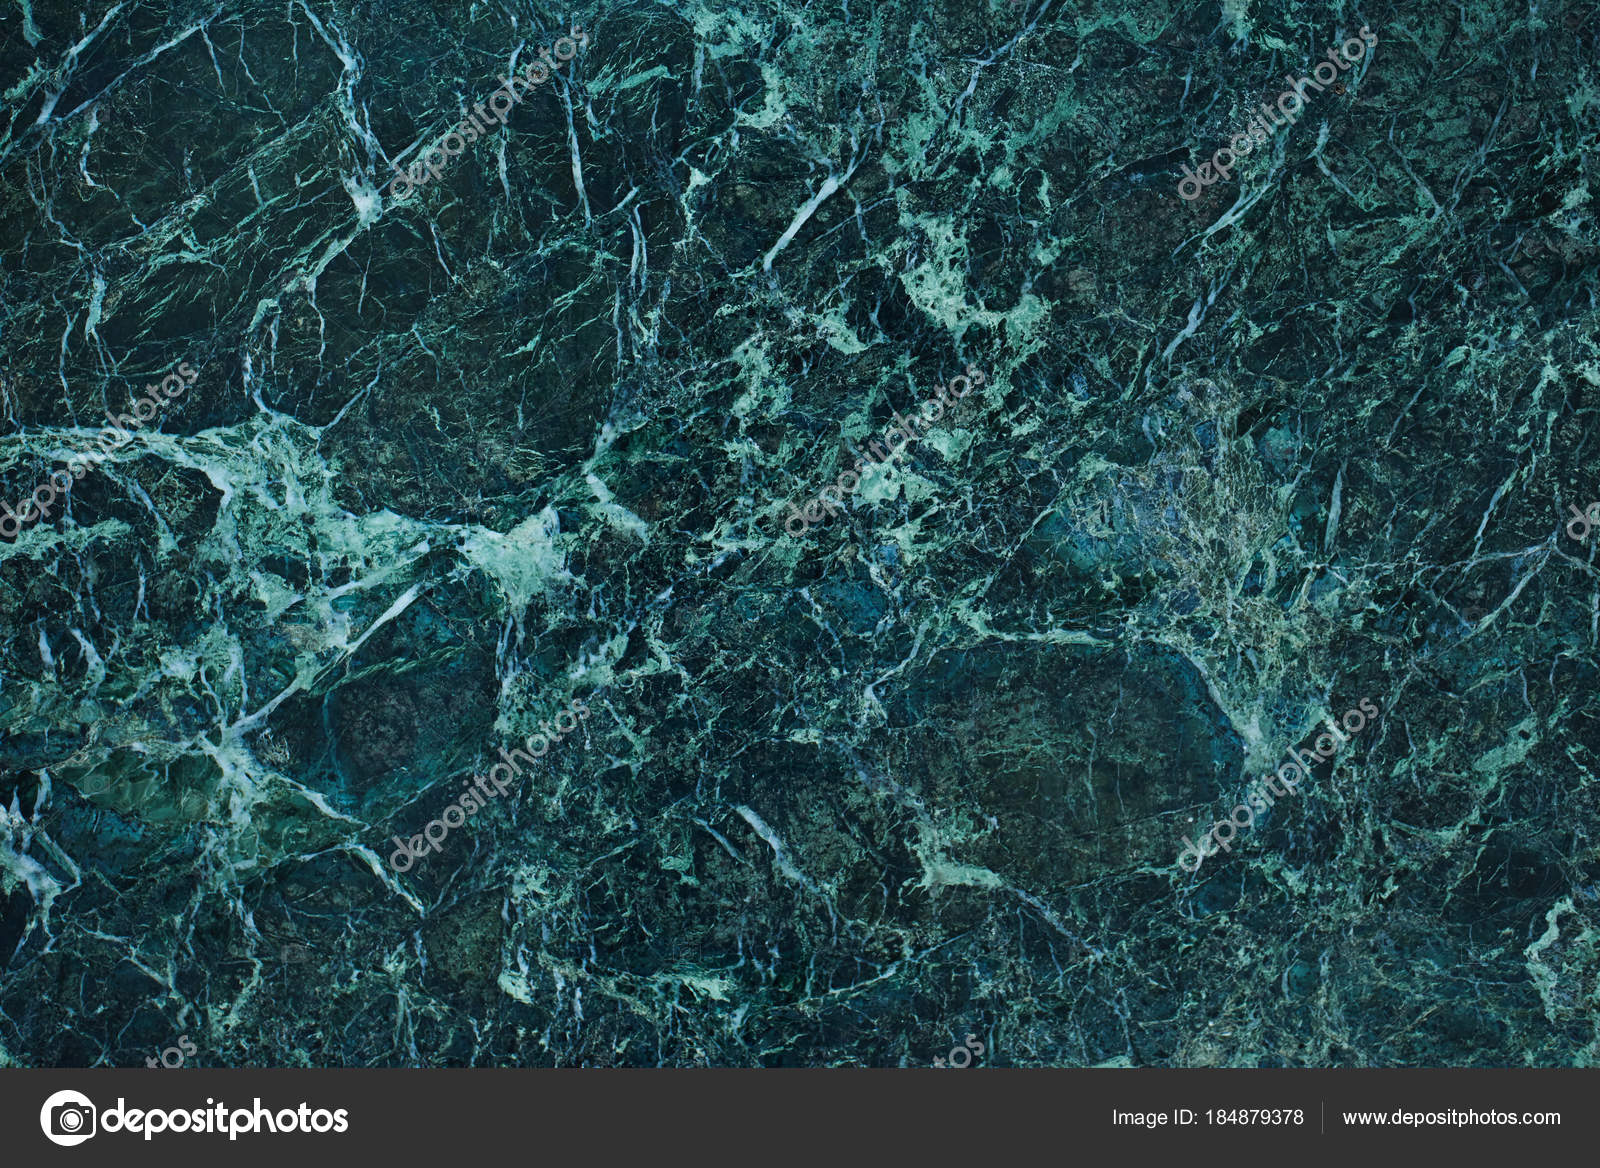 Dark Green Marble Pattern Texture Natural Background Interiors Marble Stone Stock Photo C Agavestudio 184879378